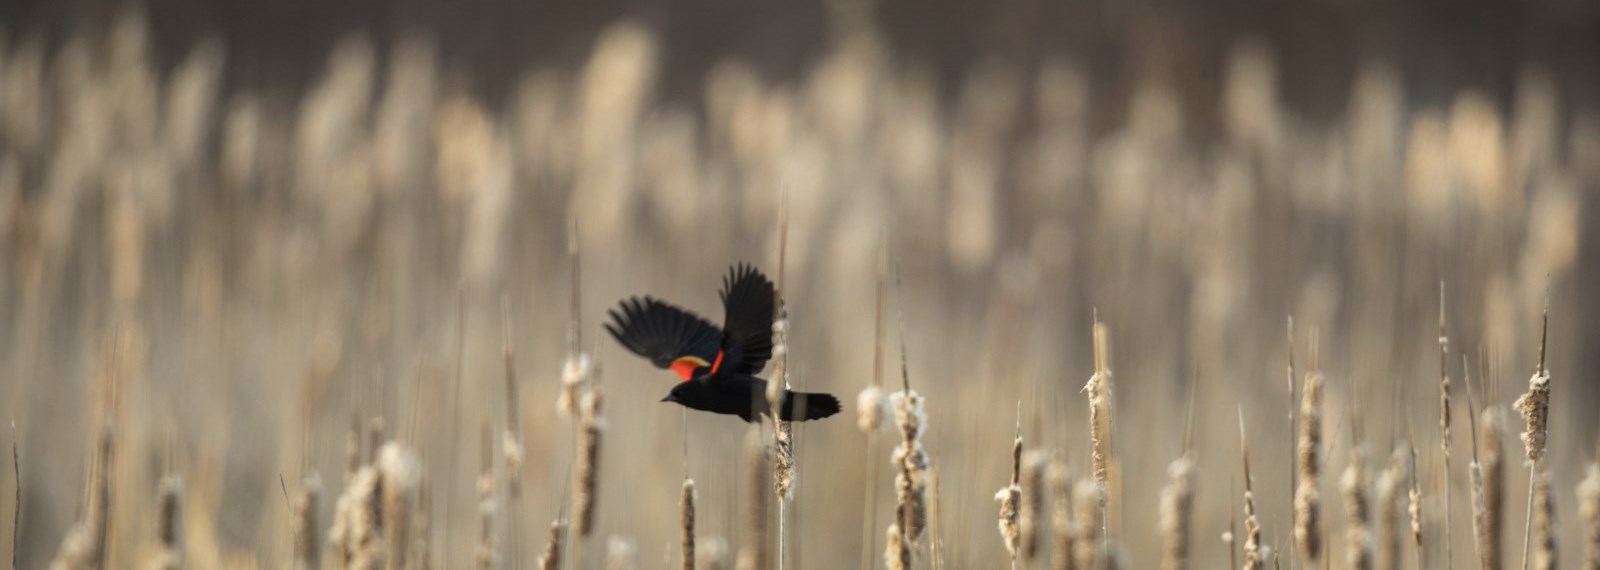 Bird flying through reeds